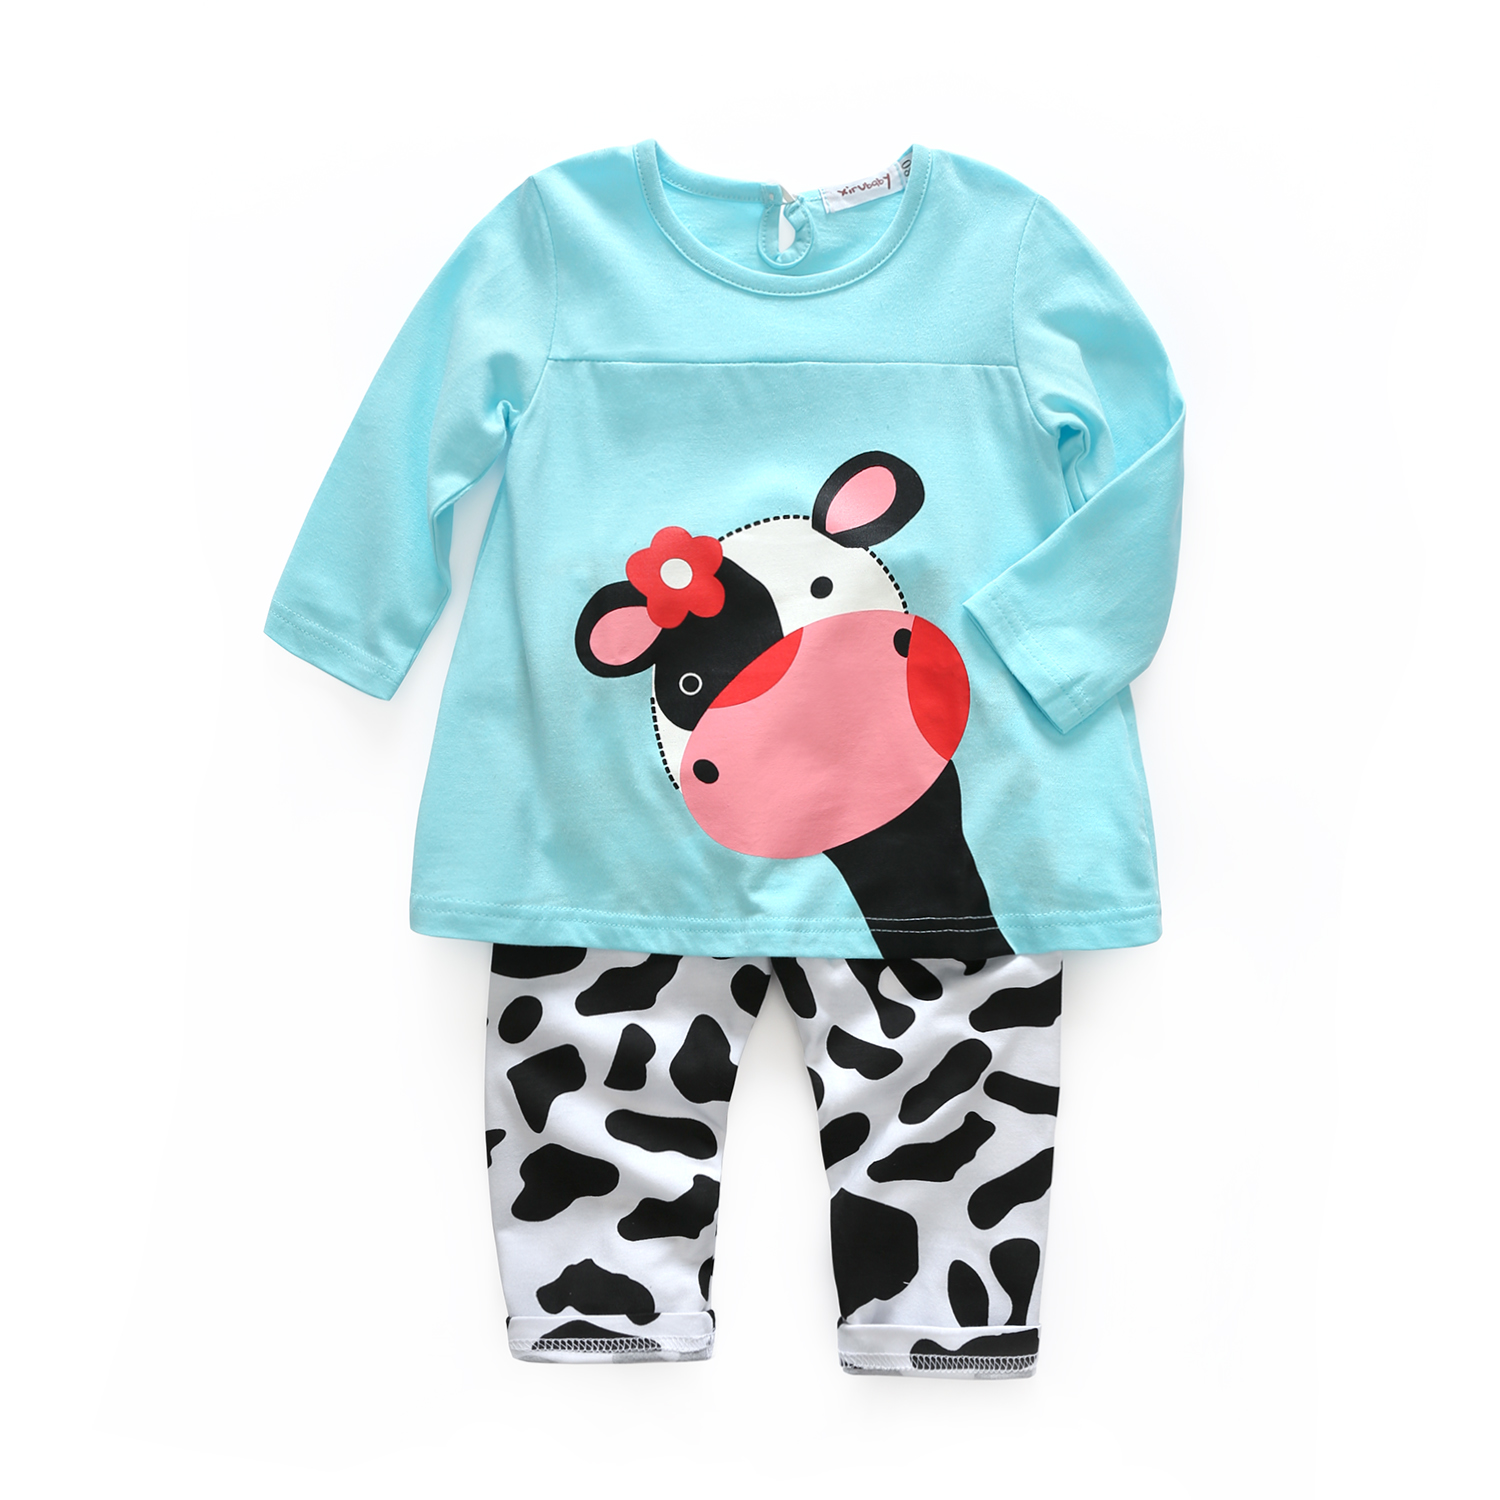 Baby clothing set newborn clothes cotton t shirt with legging cute cartoon cow printed baby girls